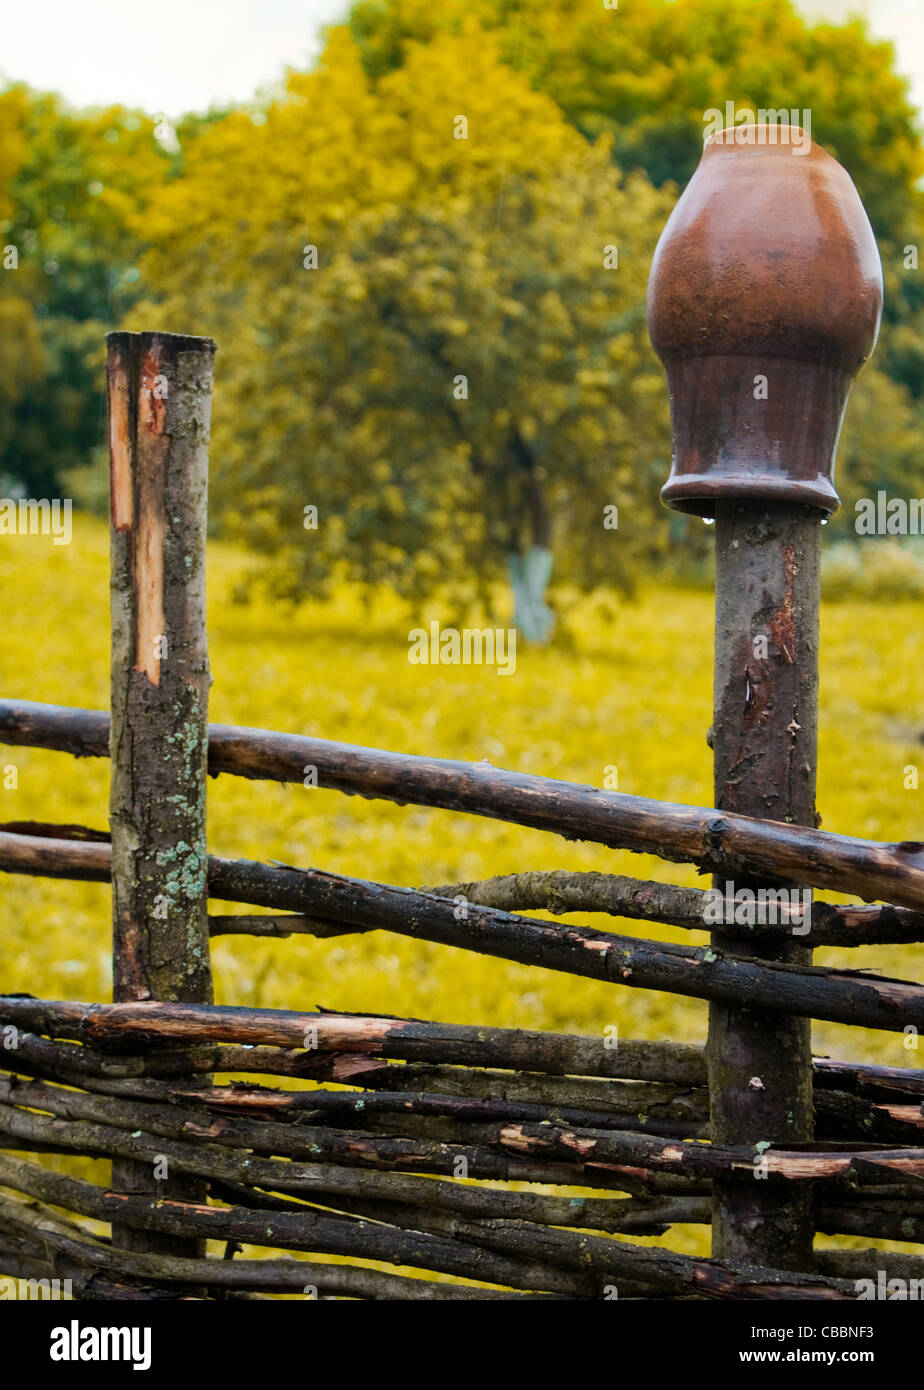 Wooden Farm Fence pot on wooden farm fence with grass and tree in background stock